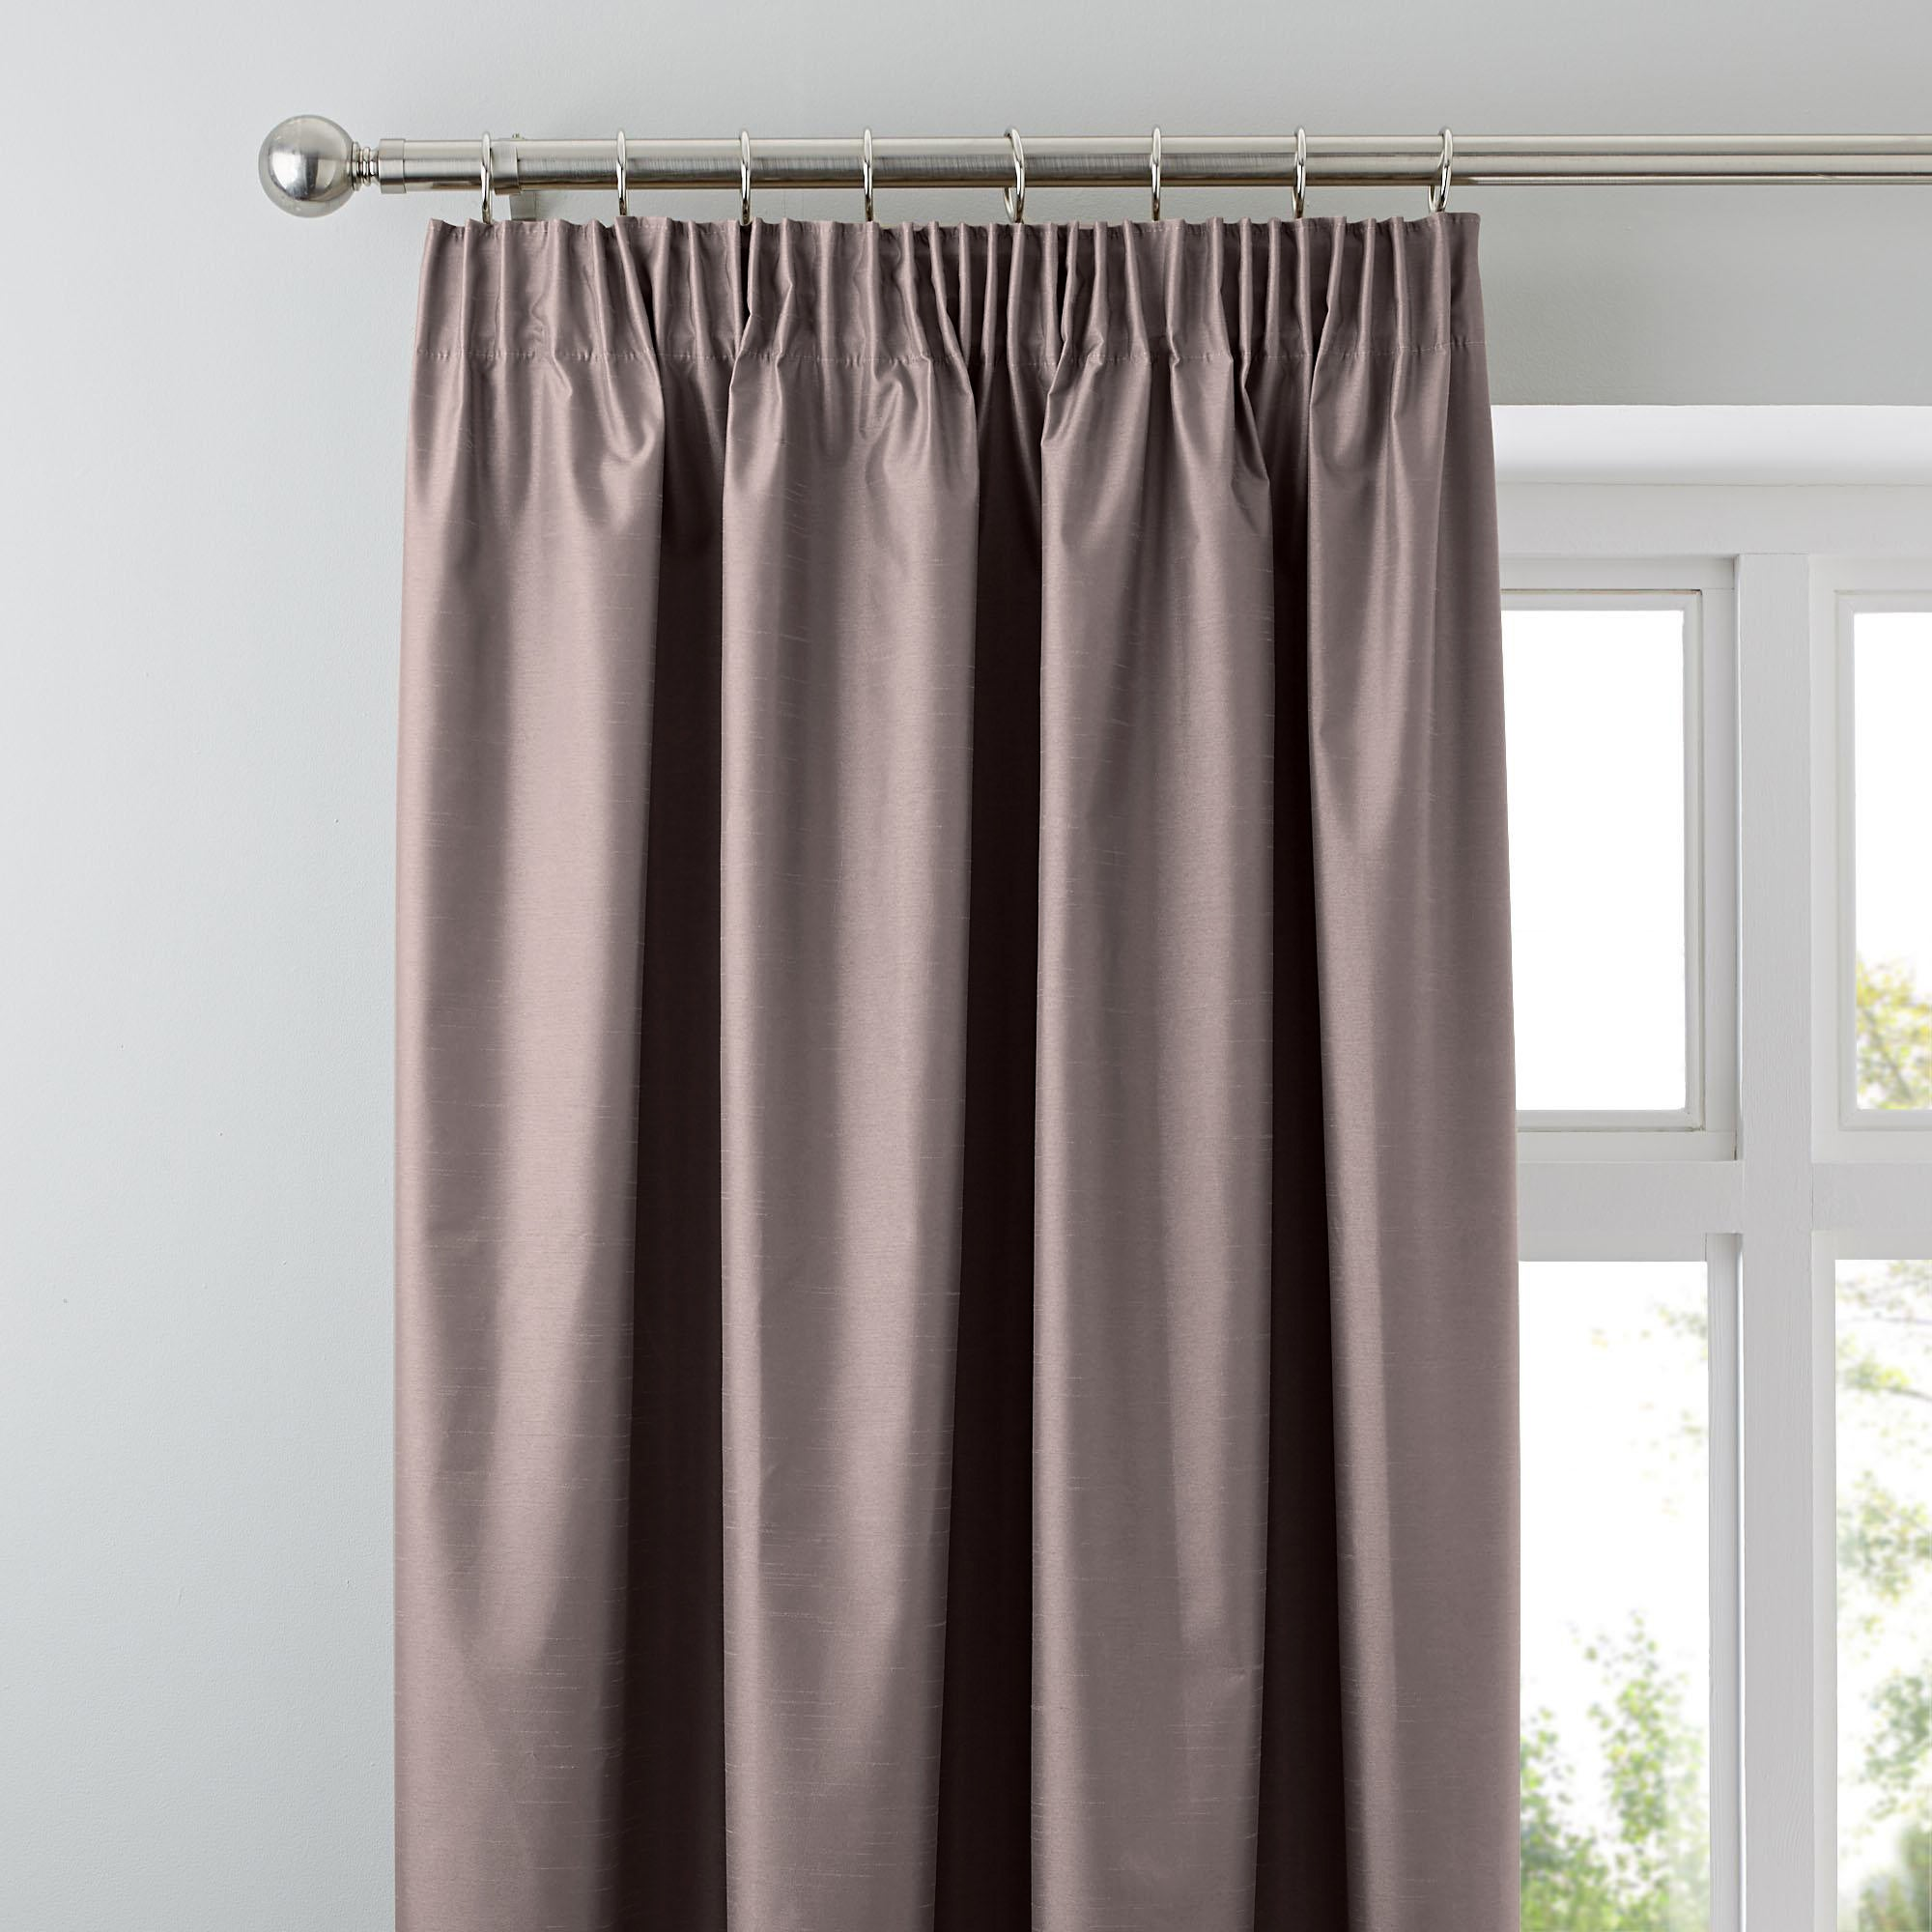 Photo of Nova gold blackout pencil pleat curtains gold